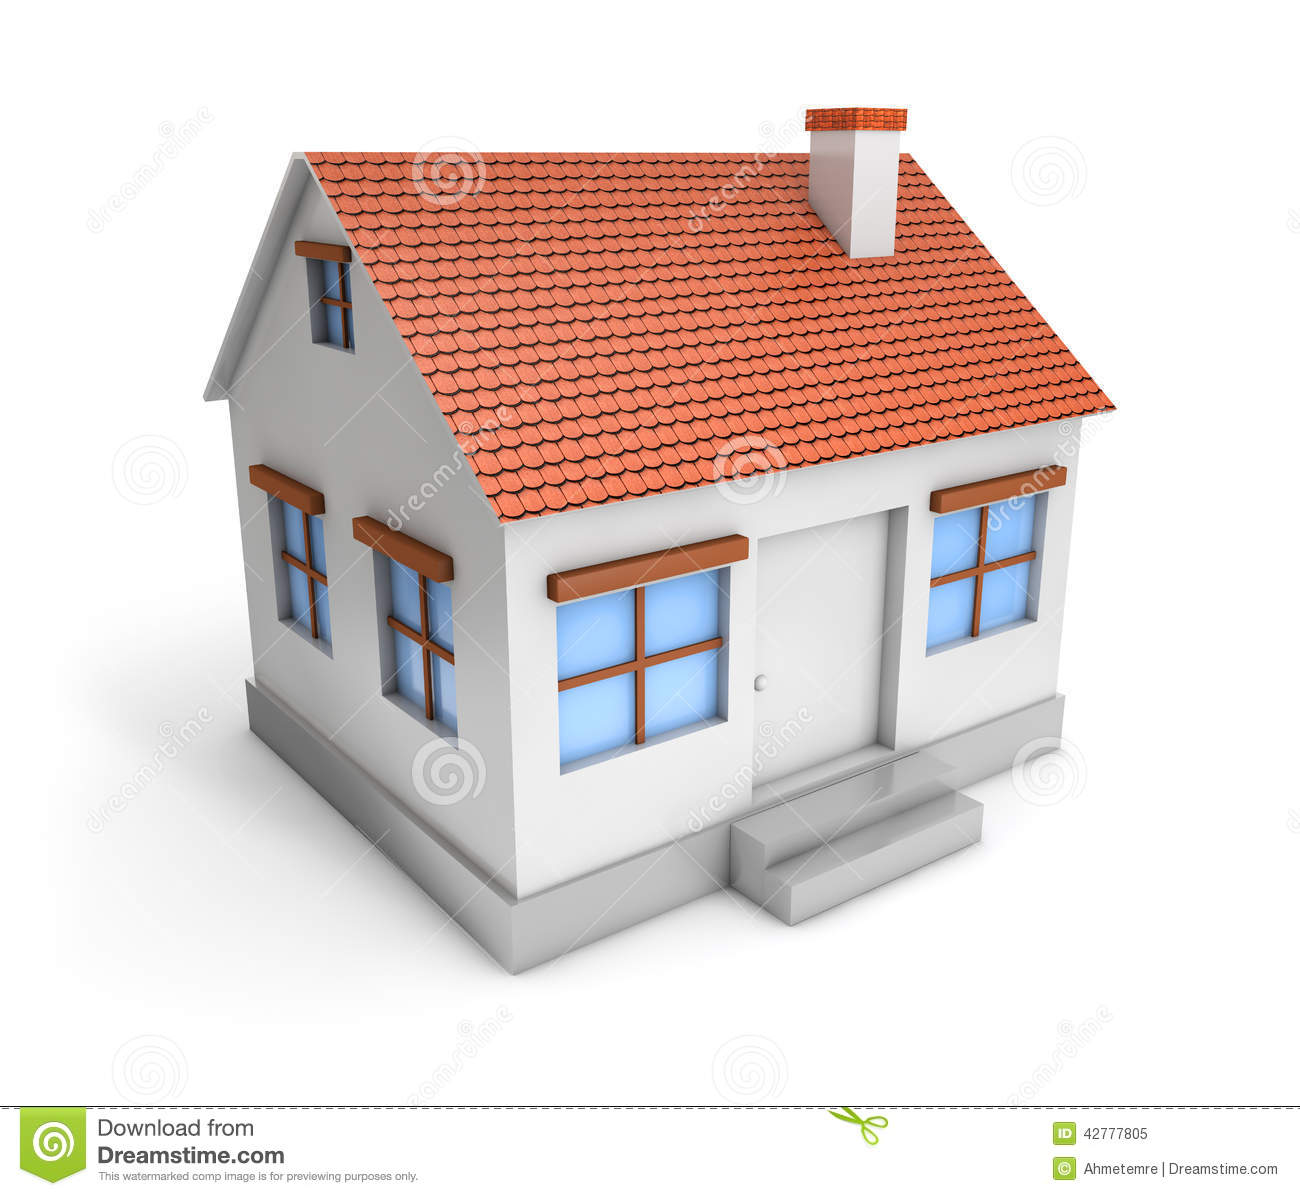 Simple House Image 3d Simple House Stock Illustration Illustration Of Icon